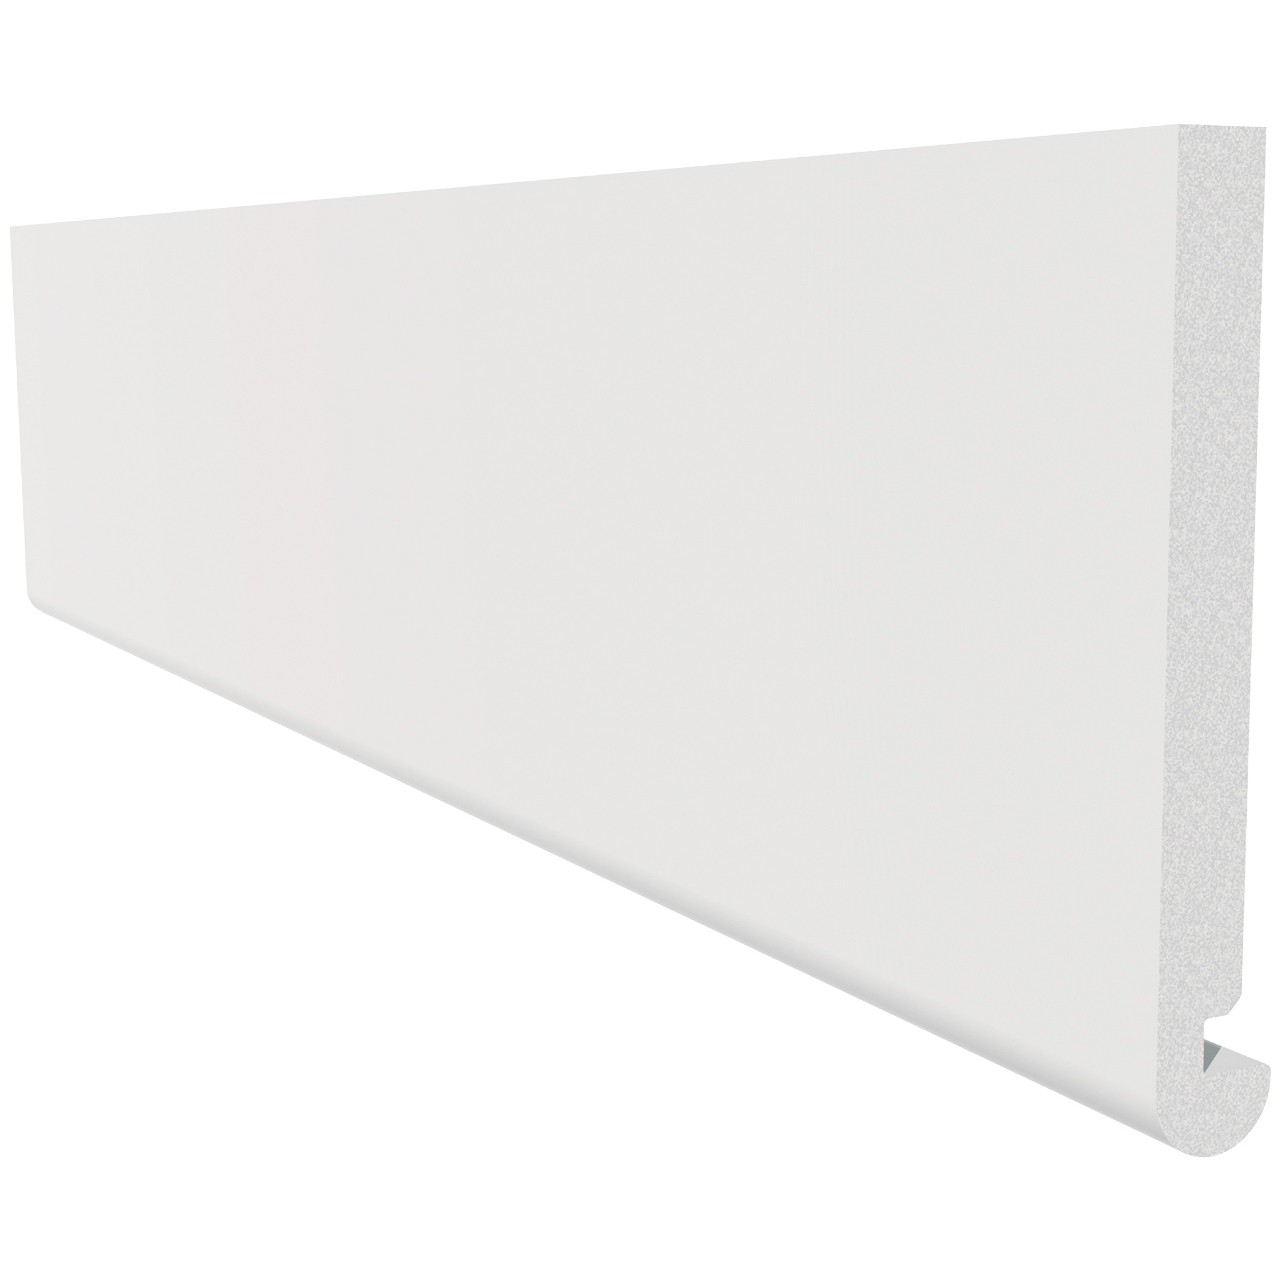 Freefoam Round Nose 18mm Fascia Board - White, 250mm, 2.5 metre